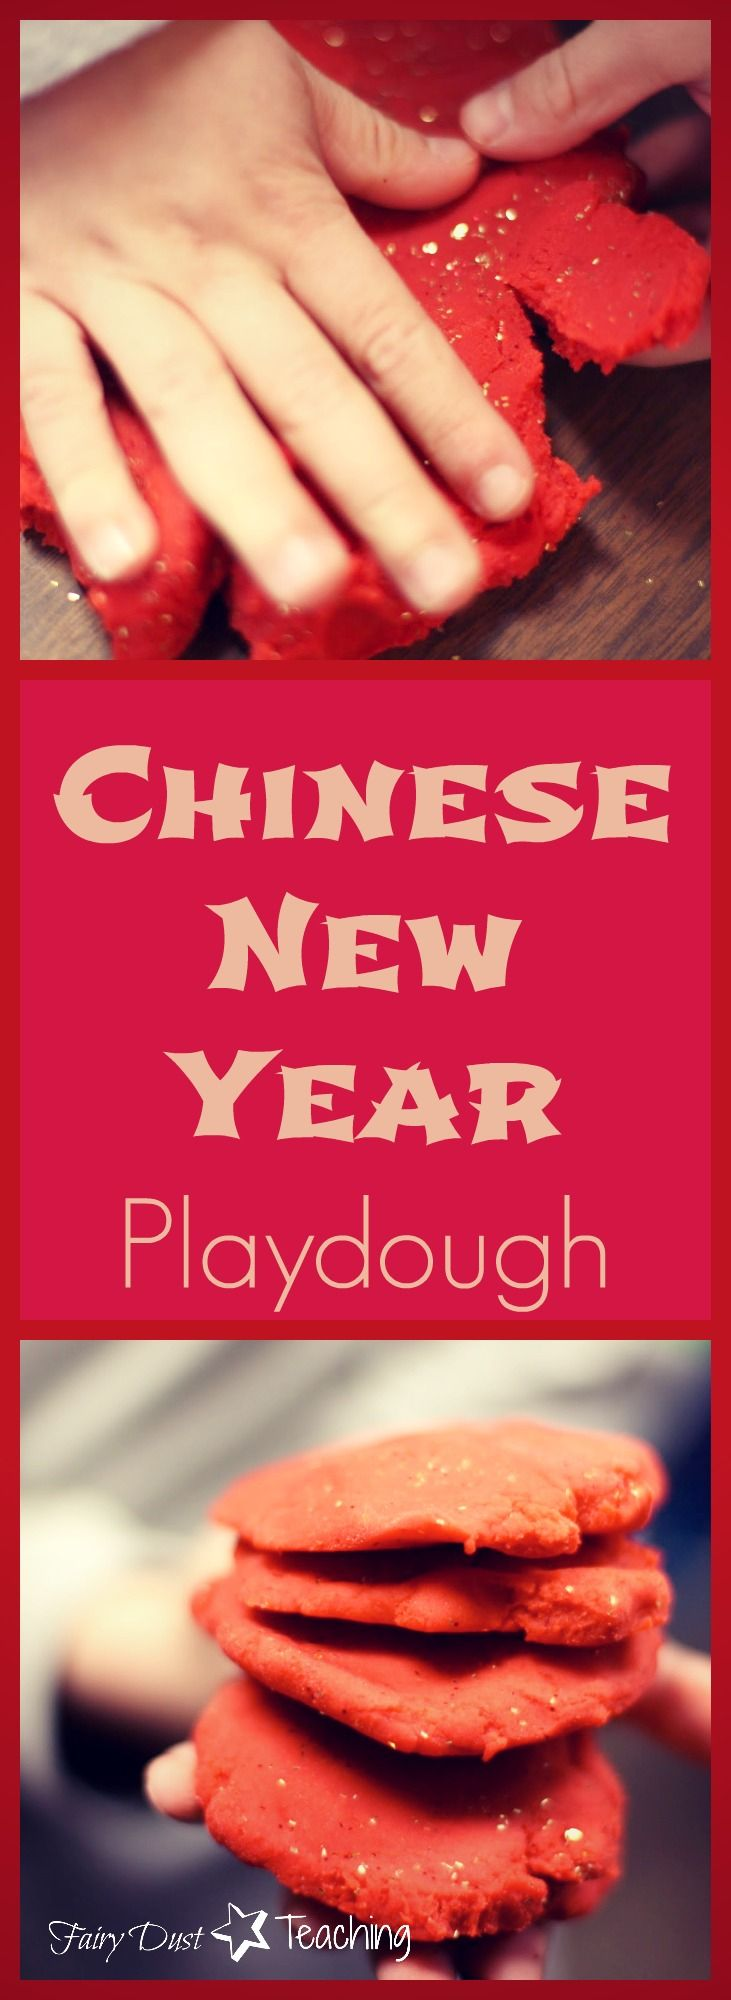 Celebrating the Chinese New Year just got even luckier! Learn how to create this Chinese New Year Lucky Playdough that is sure to delight your students at fairydustteaching.com!